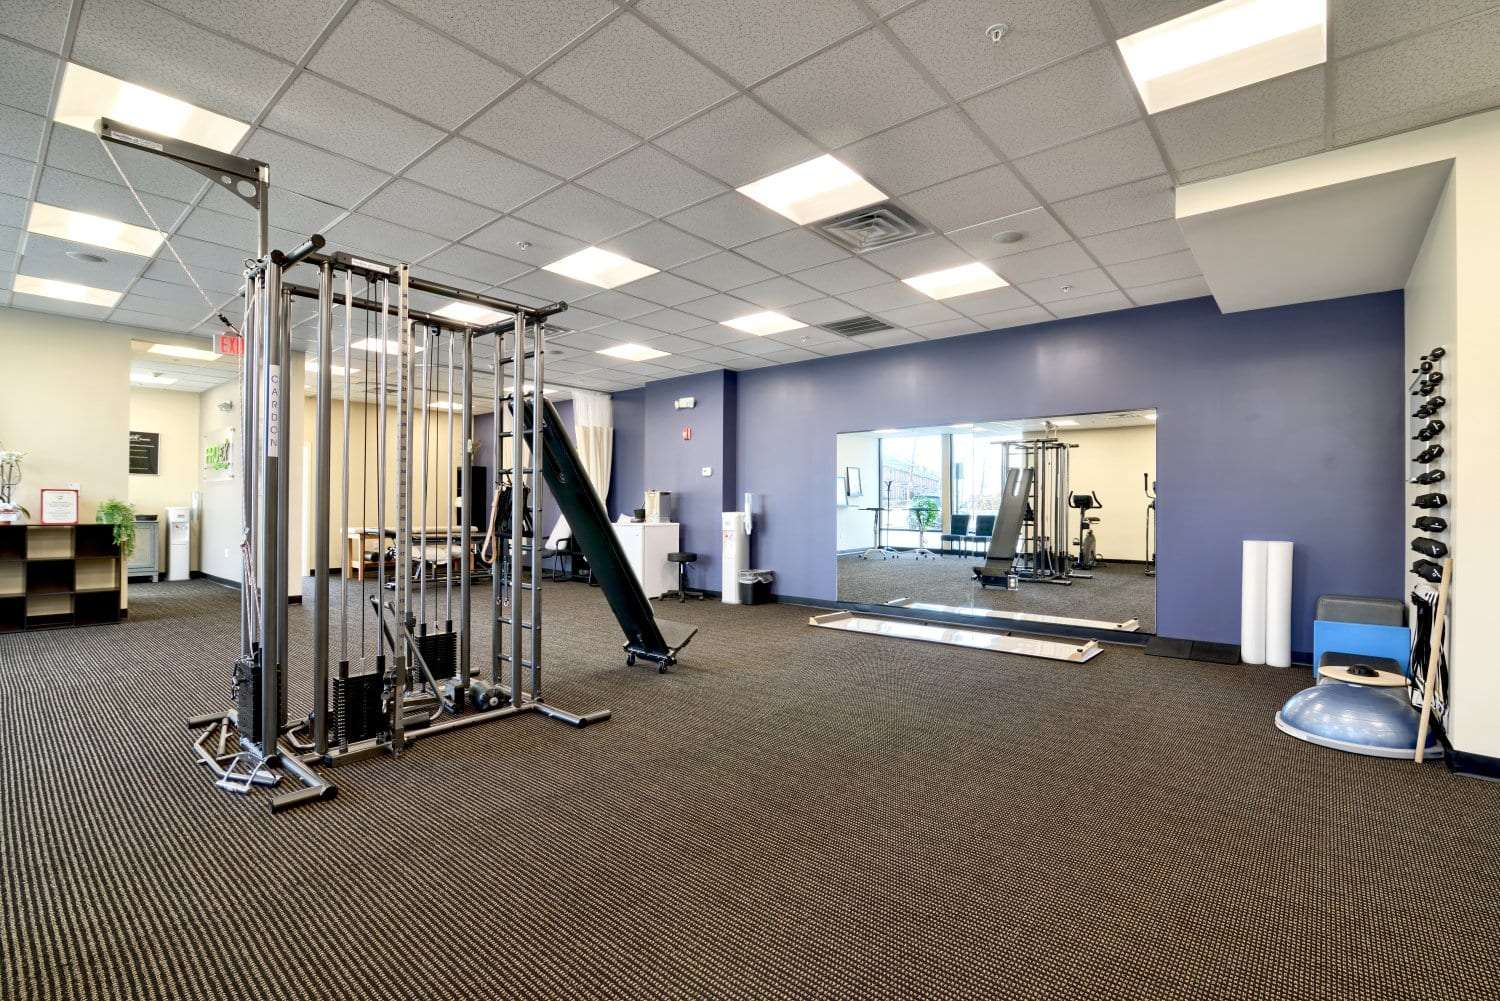 An image of the interior of our physical therapy clinic in Waltham, Massachusetts.